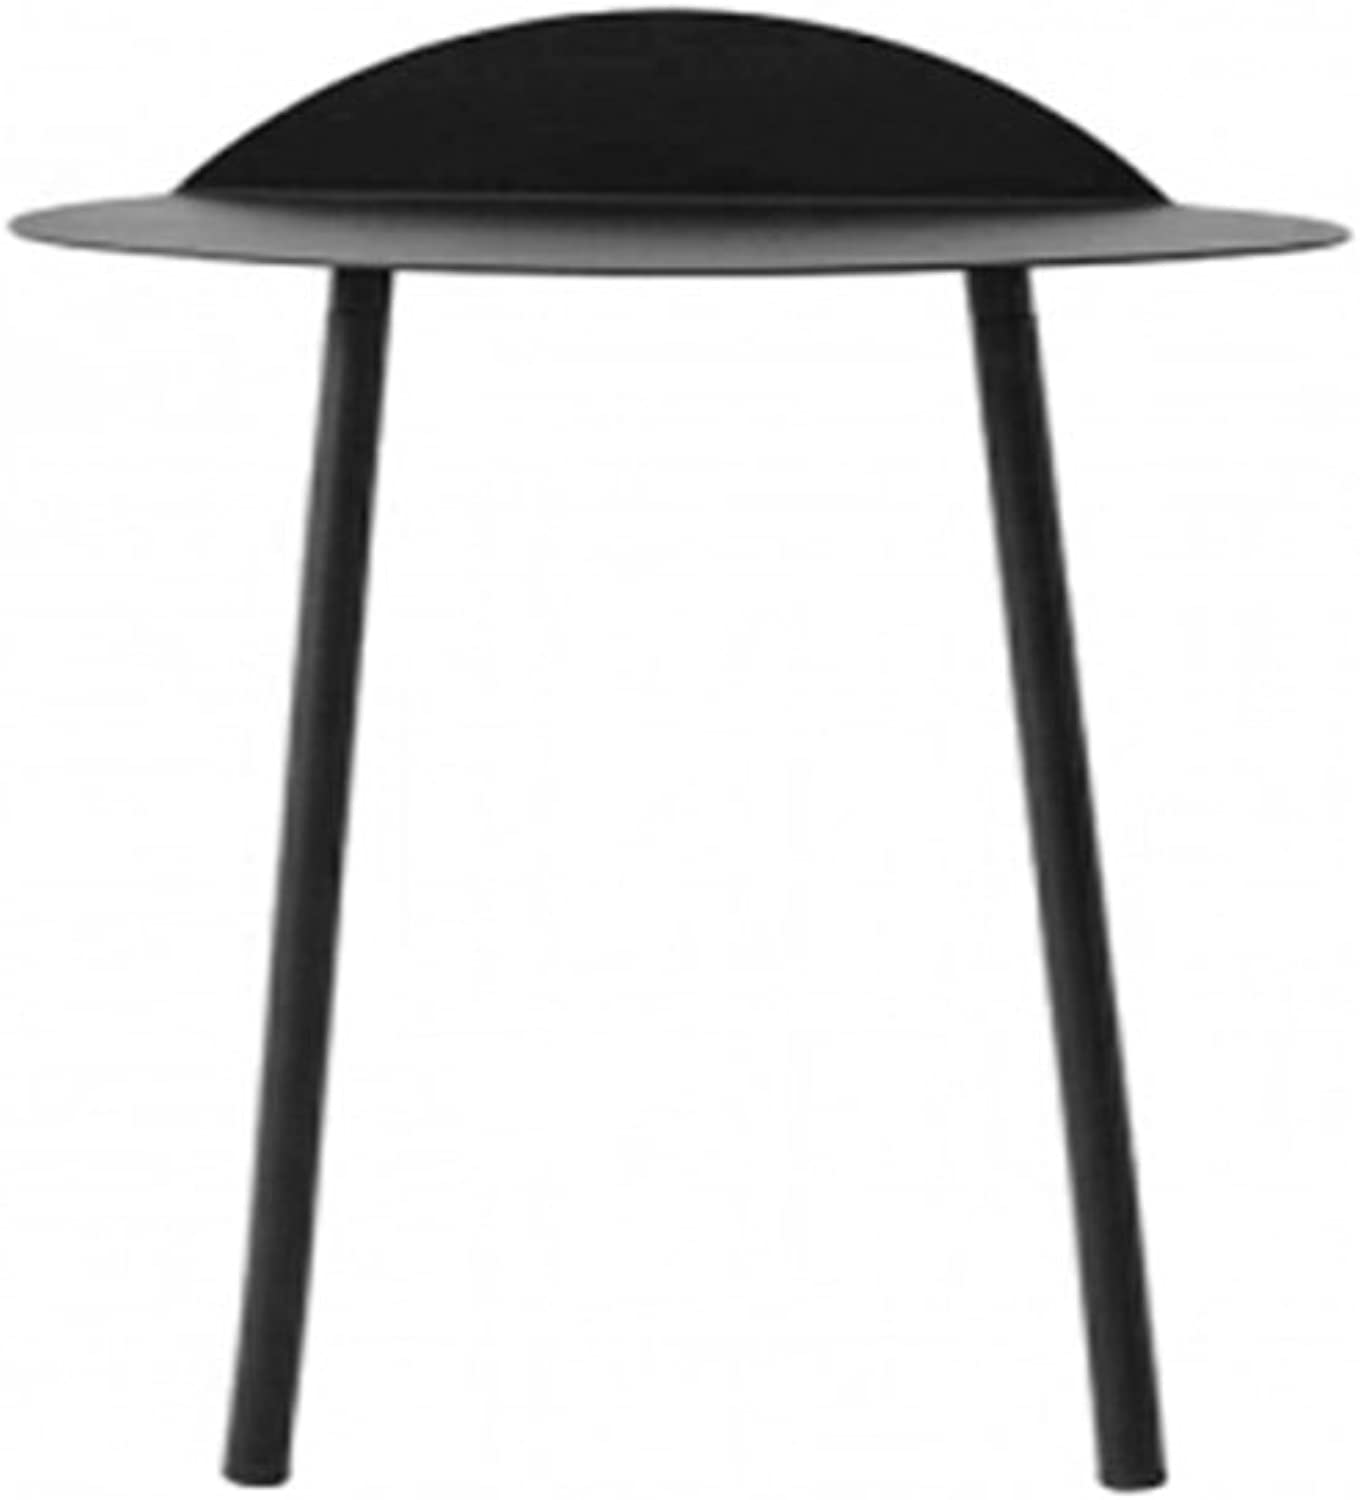 Small Coffee Tea Table Side End Table Rack Stand Home Furniture for Living Room (color   Black, Size   B)